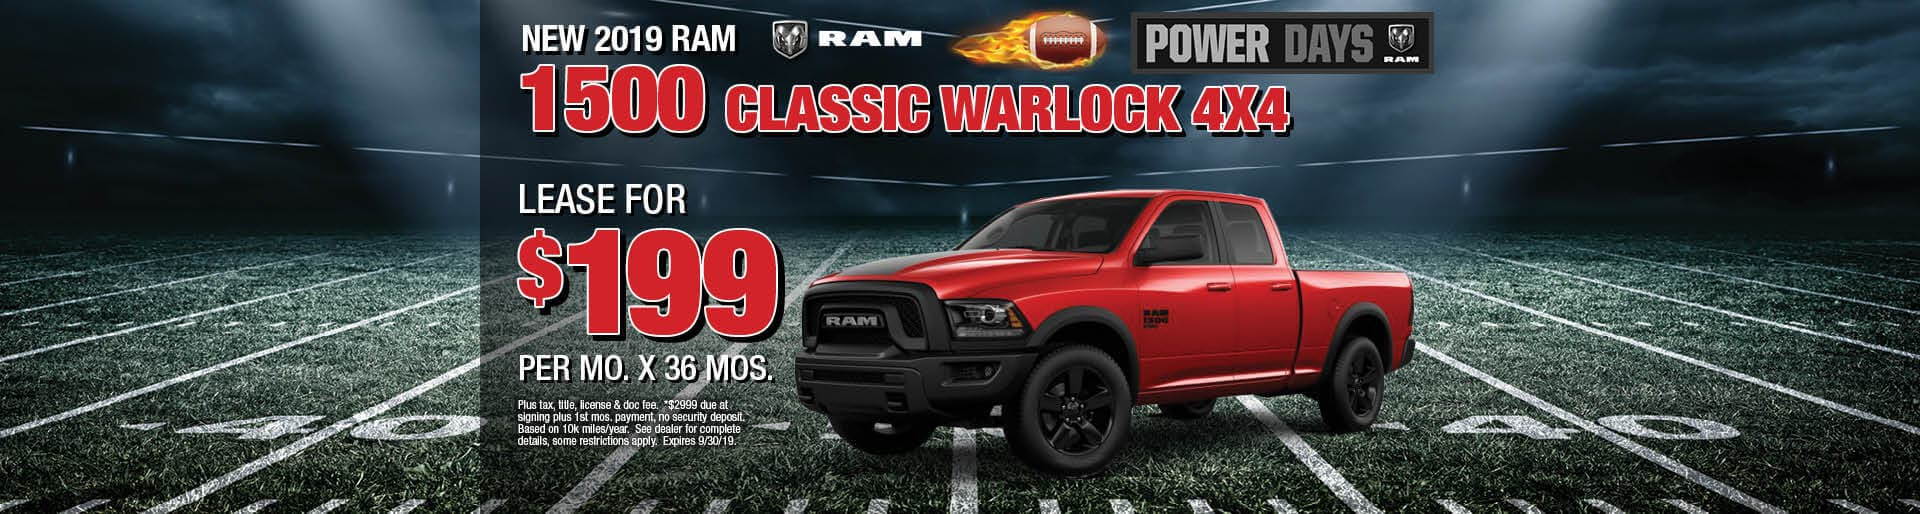 Lease a 2019 Ram 1500 Classic Warlock for $199/mo. for 36 mos.